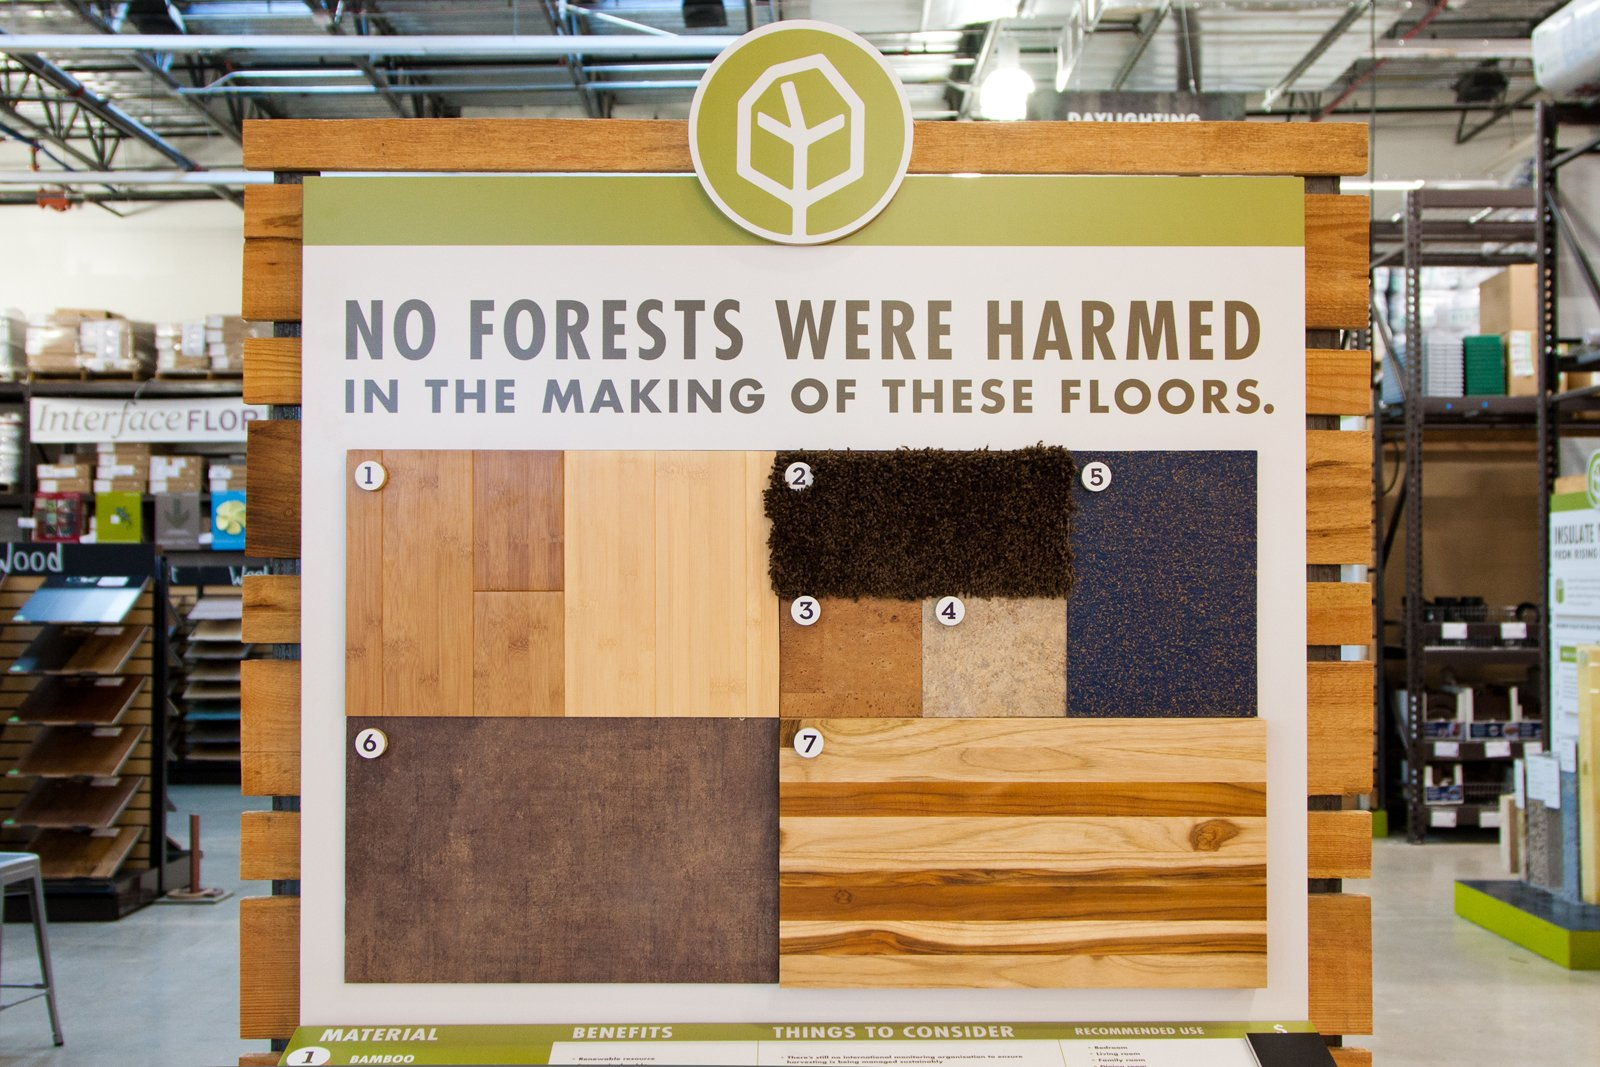 """The flooring zone. """"Retail should be a trusted partner and the ultimate consultant,"""" says Yanosy. """"And it extends throughout the entire business - employees should be treated well, too."""" He ticks off people, nature, excellence, belief in dreams, and community as the core values of TreeHouse. As for making that into a successful business model, Yanosy reflects and says, """"There's always going to be a bit of tension between the needs of business and values. But we're running toward that, not away from it. We think it can be constructive.""""  Photo 8 of 8 in A New Kind of Hardware Store: TreeHouse"""